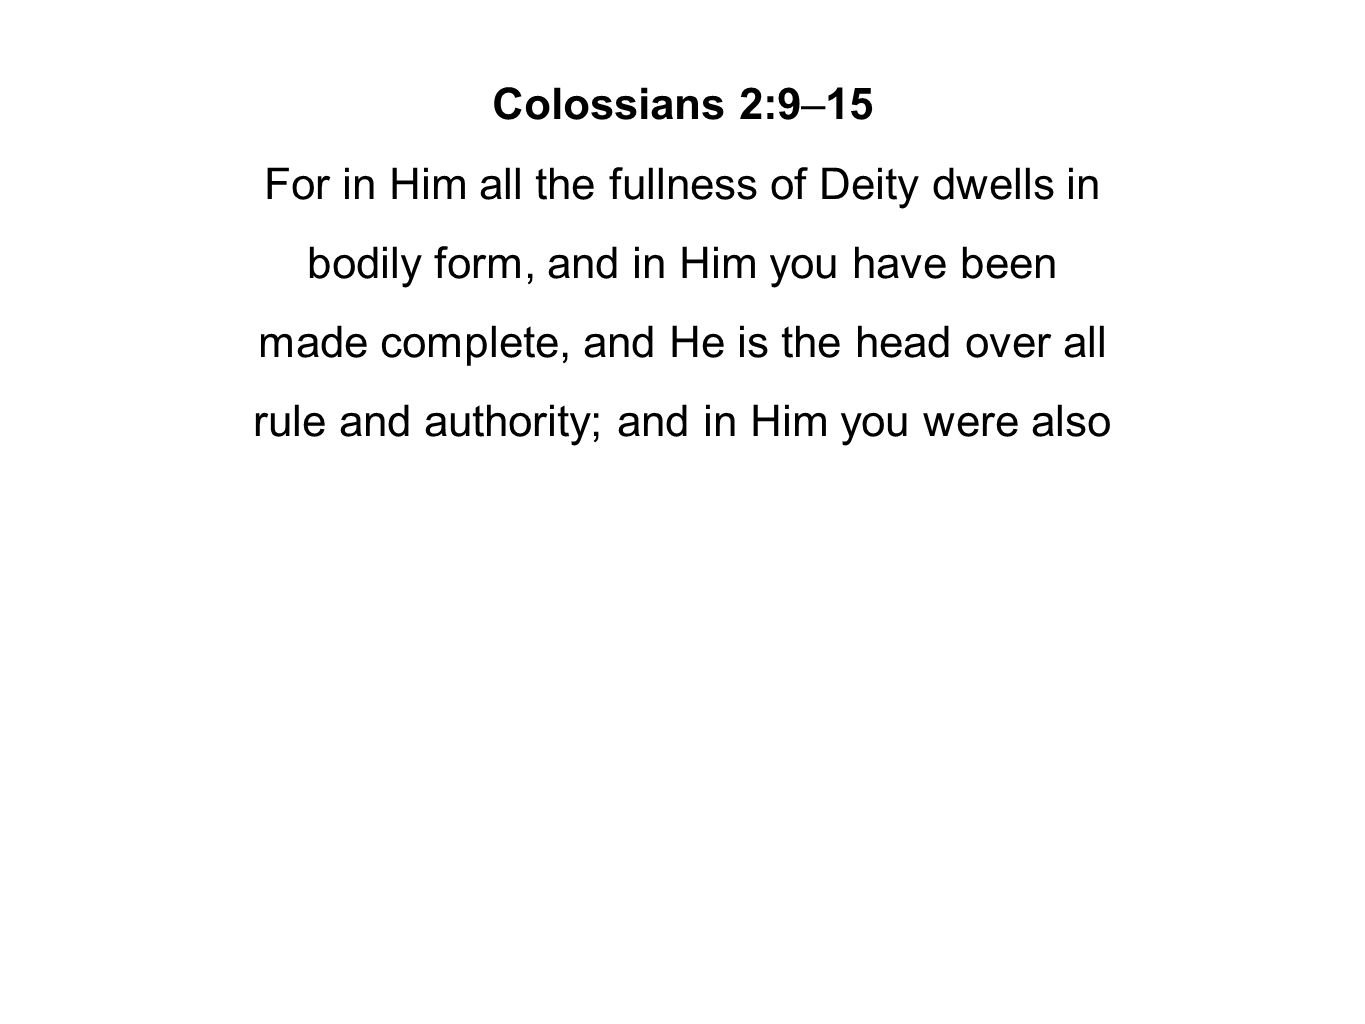 Colossians 2:9–15 For in Him all the fullness of Deity dwells in bodily form, and in Him you have been made complete, and He is the head over all rule and authority; and in Him you were also